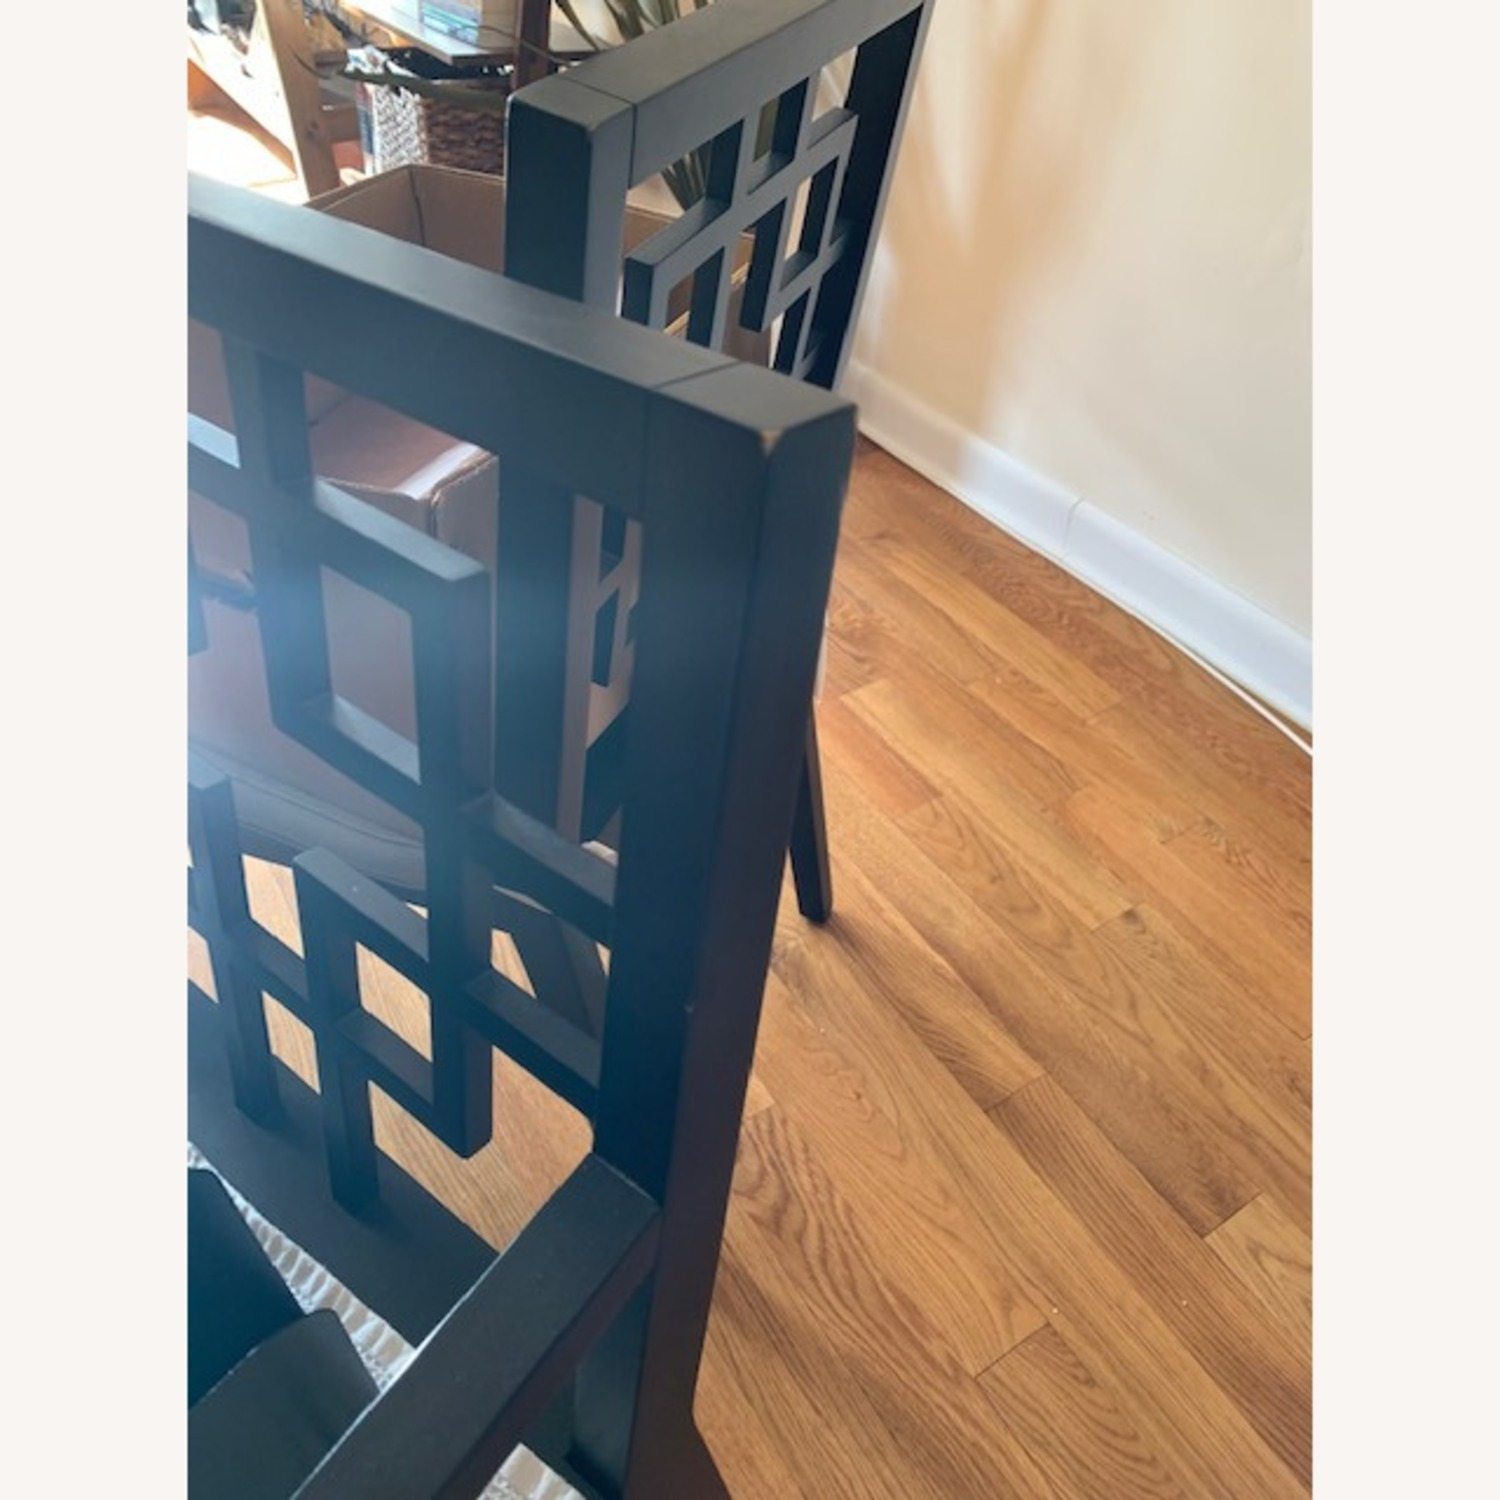 West Elm Dining Table w/ 4 Chairs - image-17